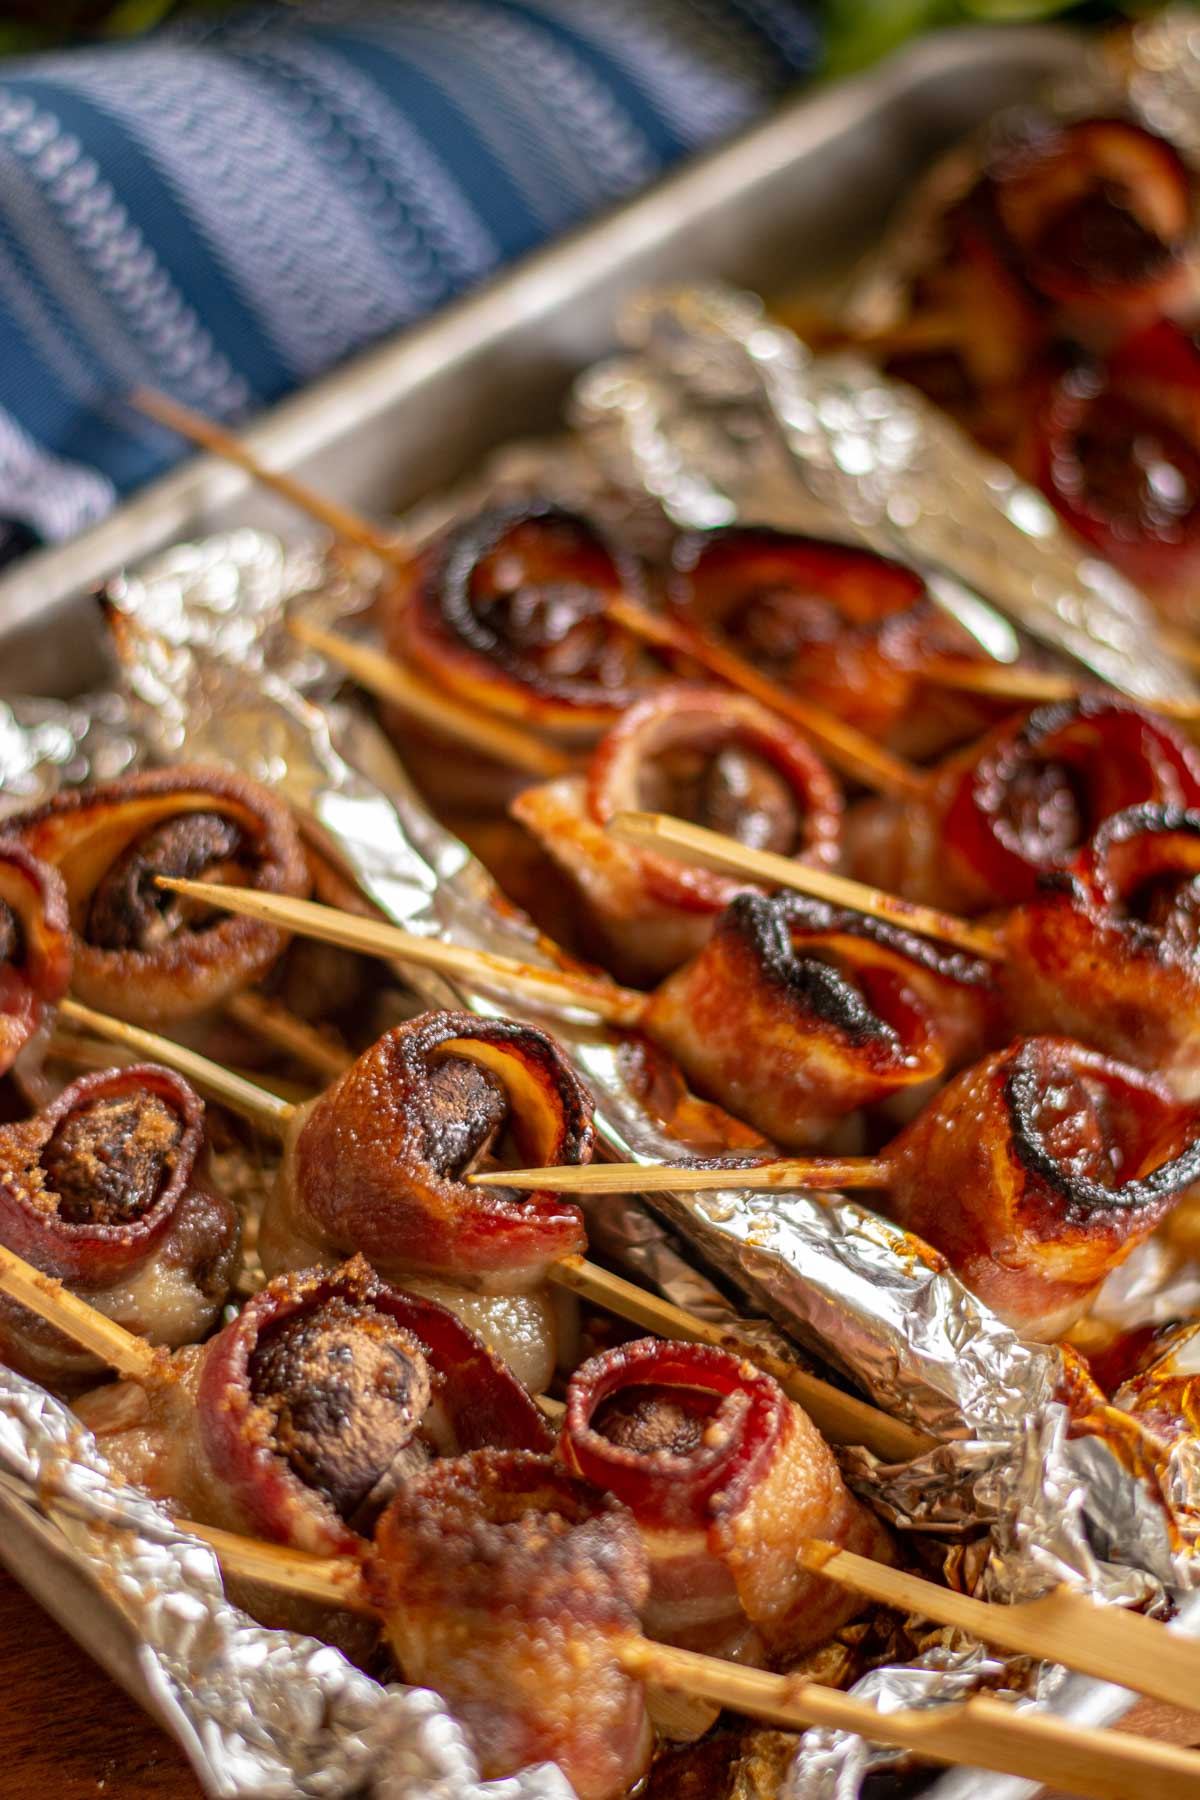 bacon wrapped mushroom kabobs on a sheet pan with wooden skewers.